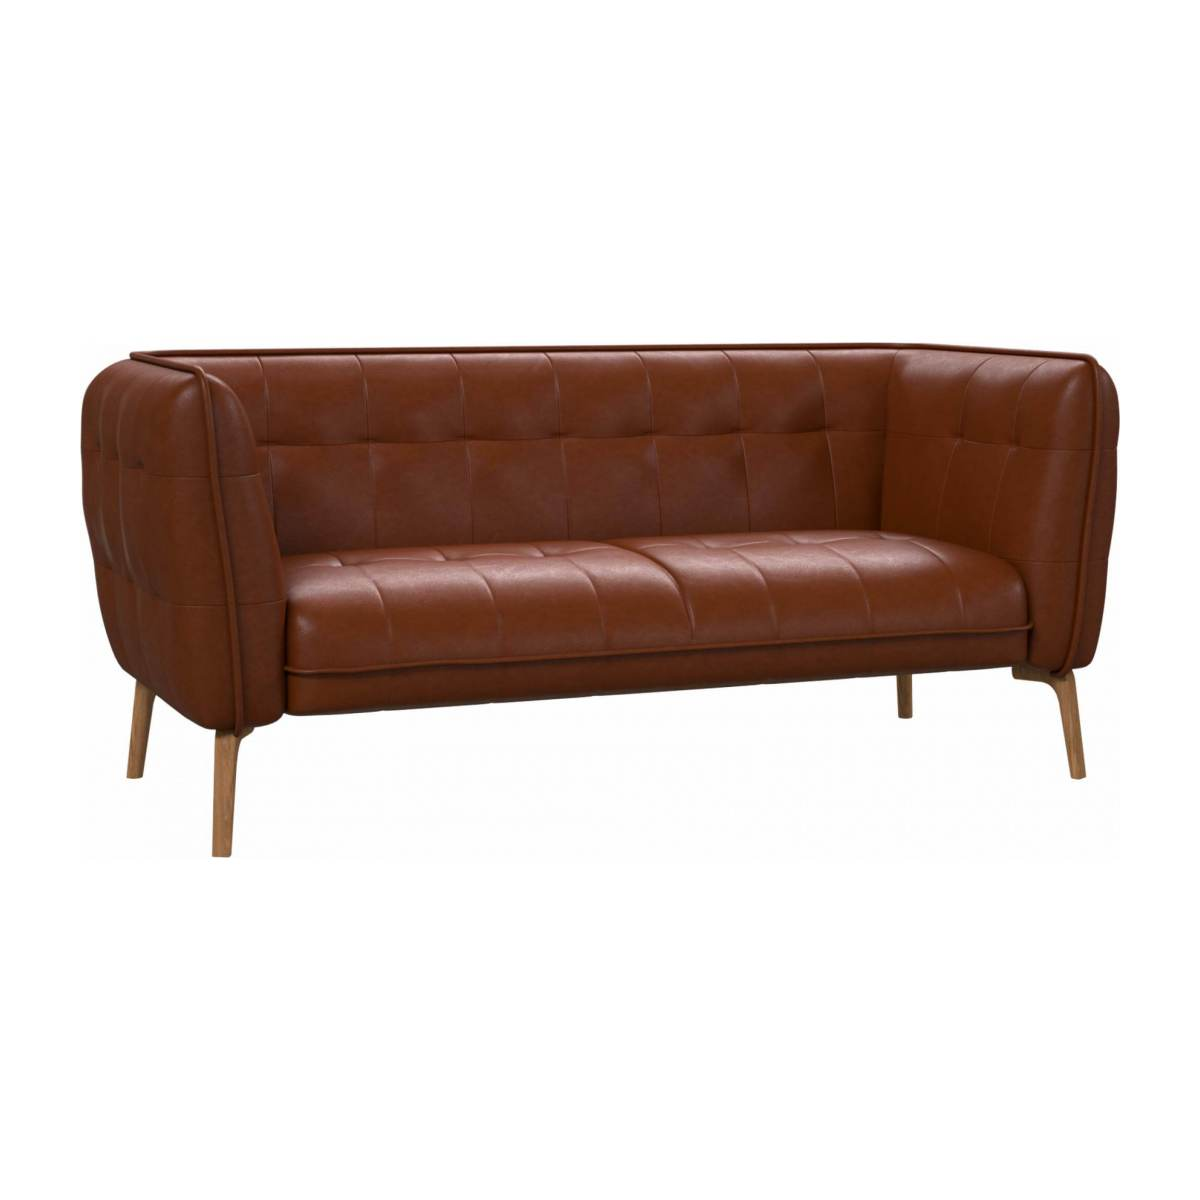 2 seater sofa in Vintage aniline leather, old chestnut and natural oak feet n°2